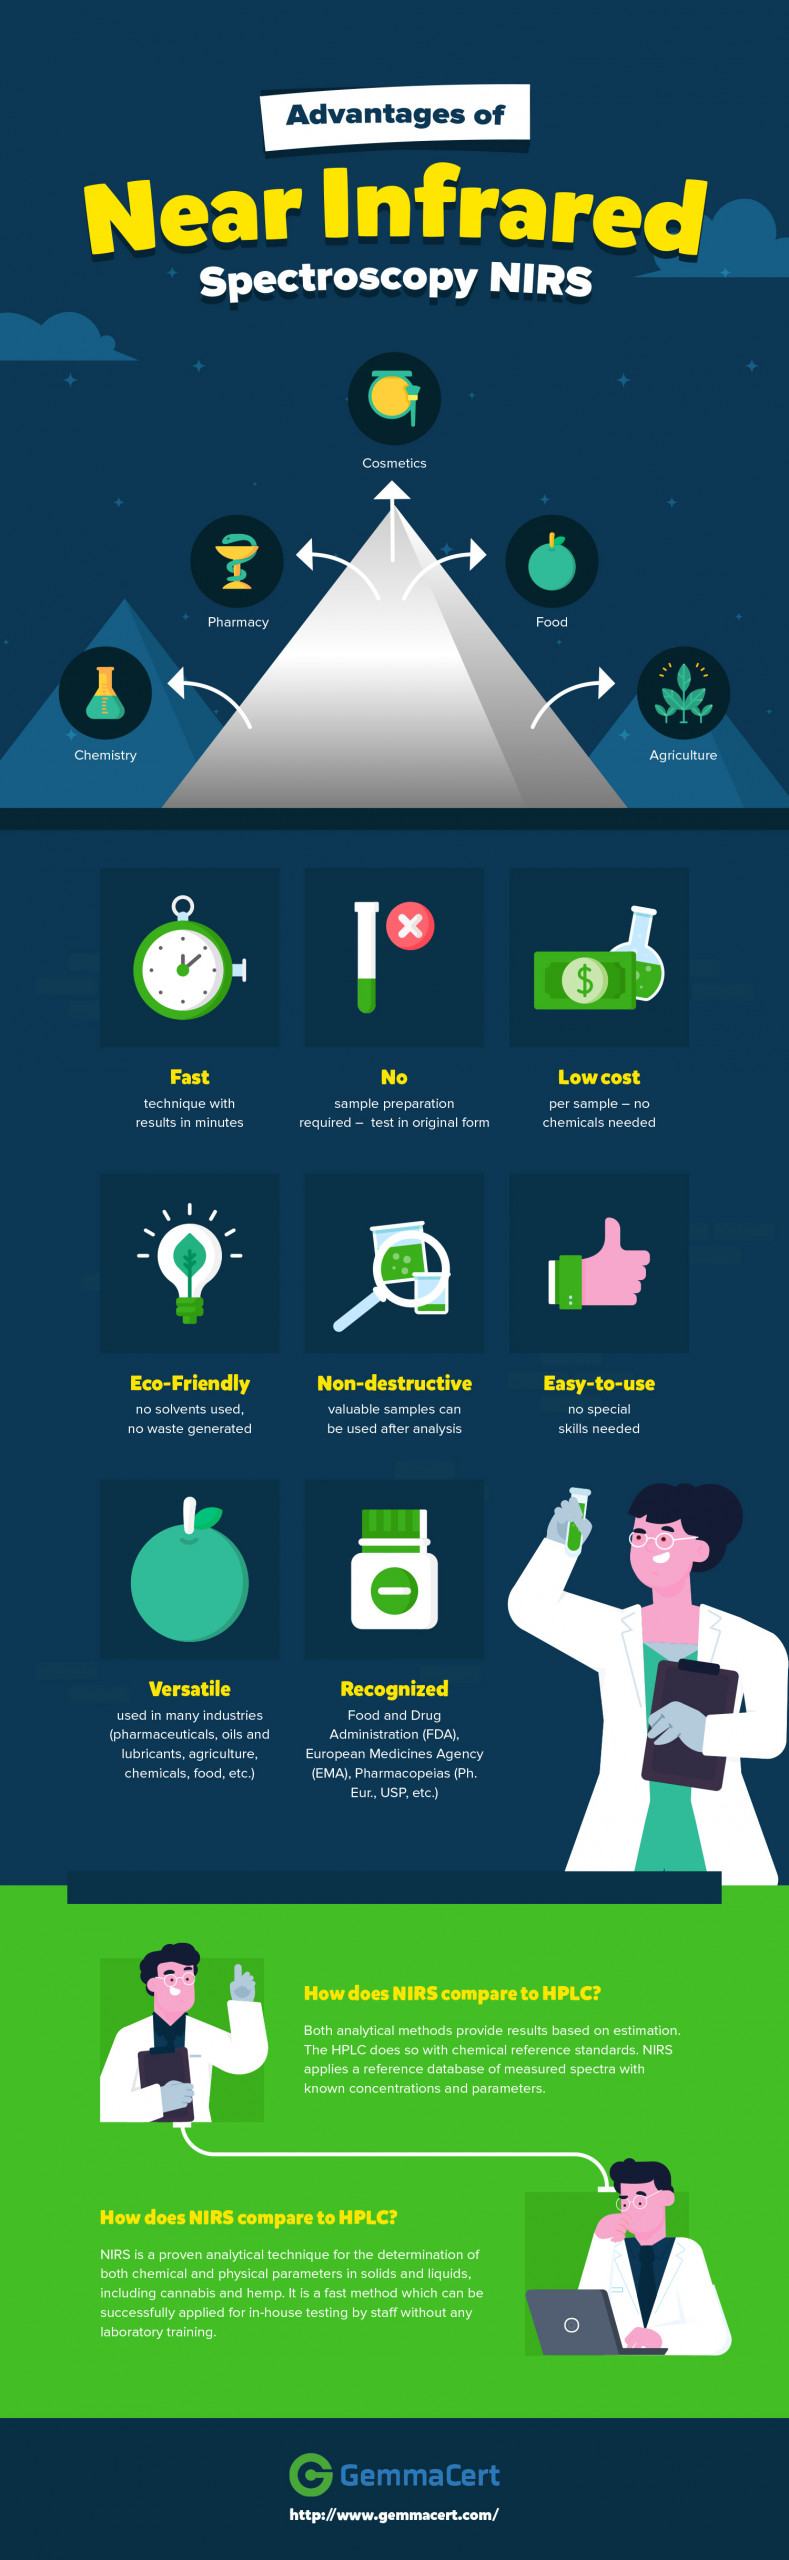 Advantages of Near Infrared Spectroscopy NIRS infographic